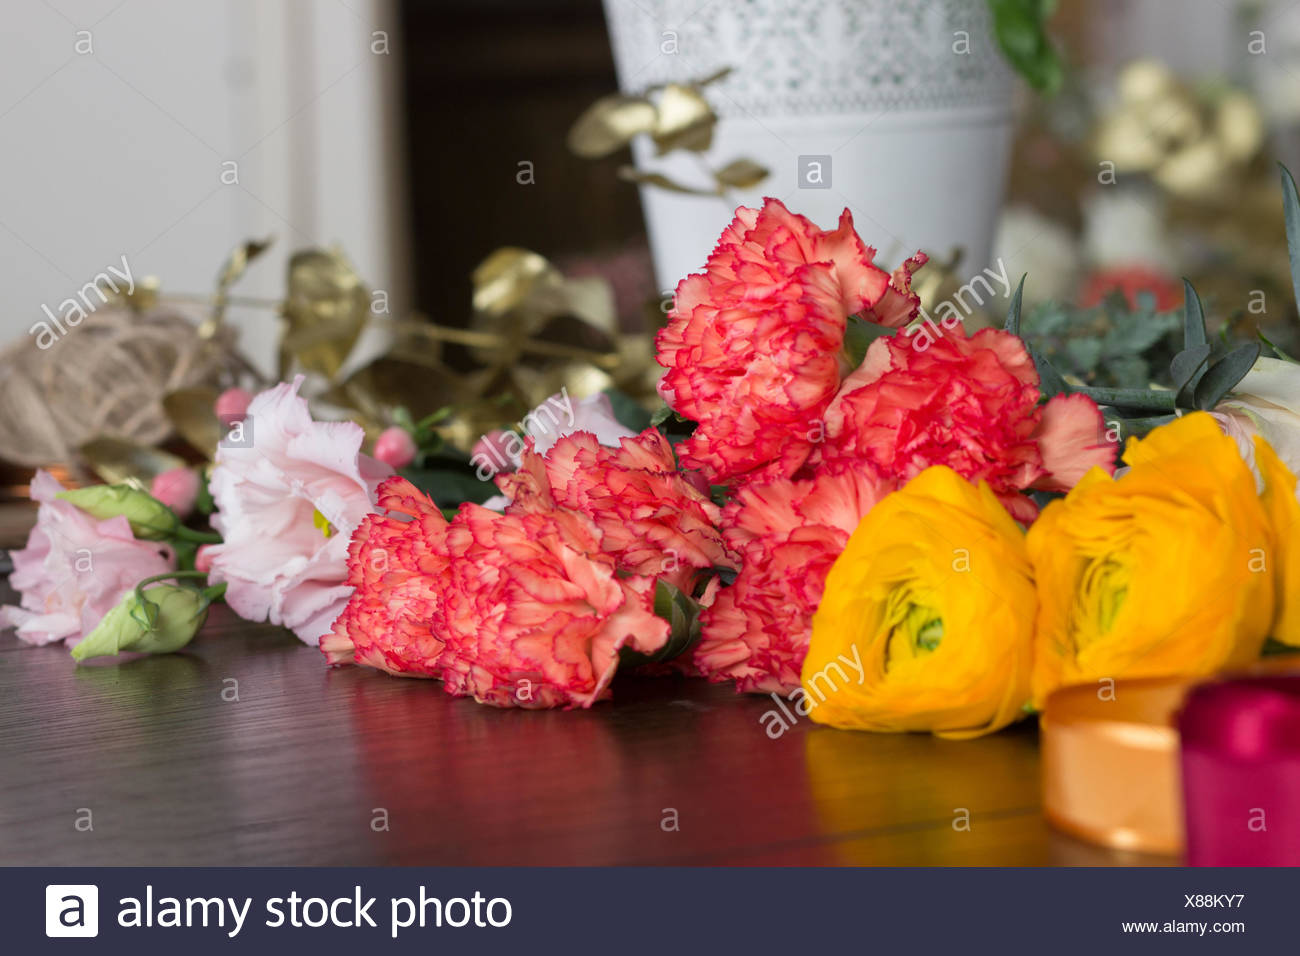 Four Different Types Of Flowers On The Table Stock Photo 280474411